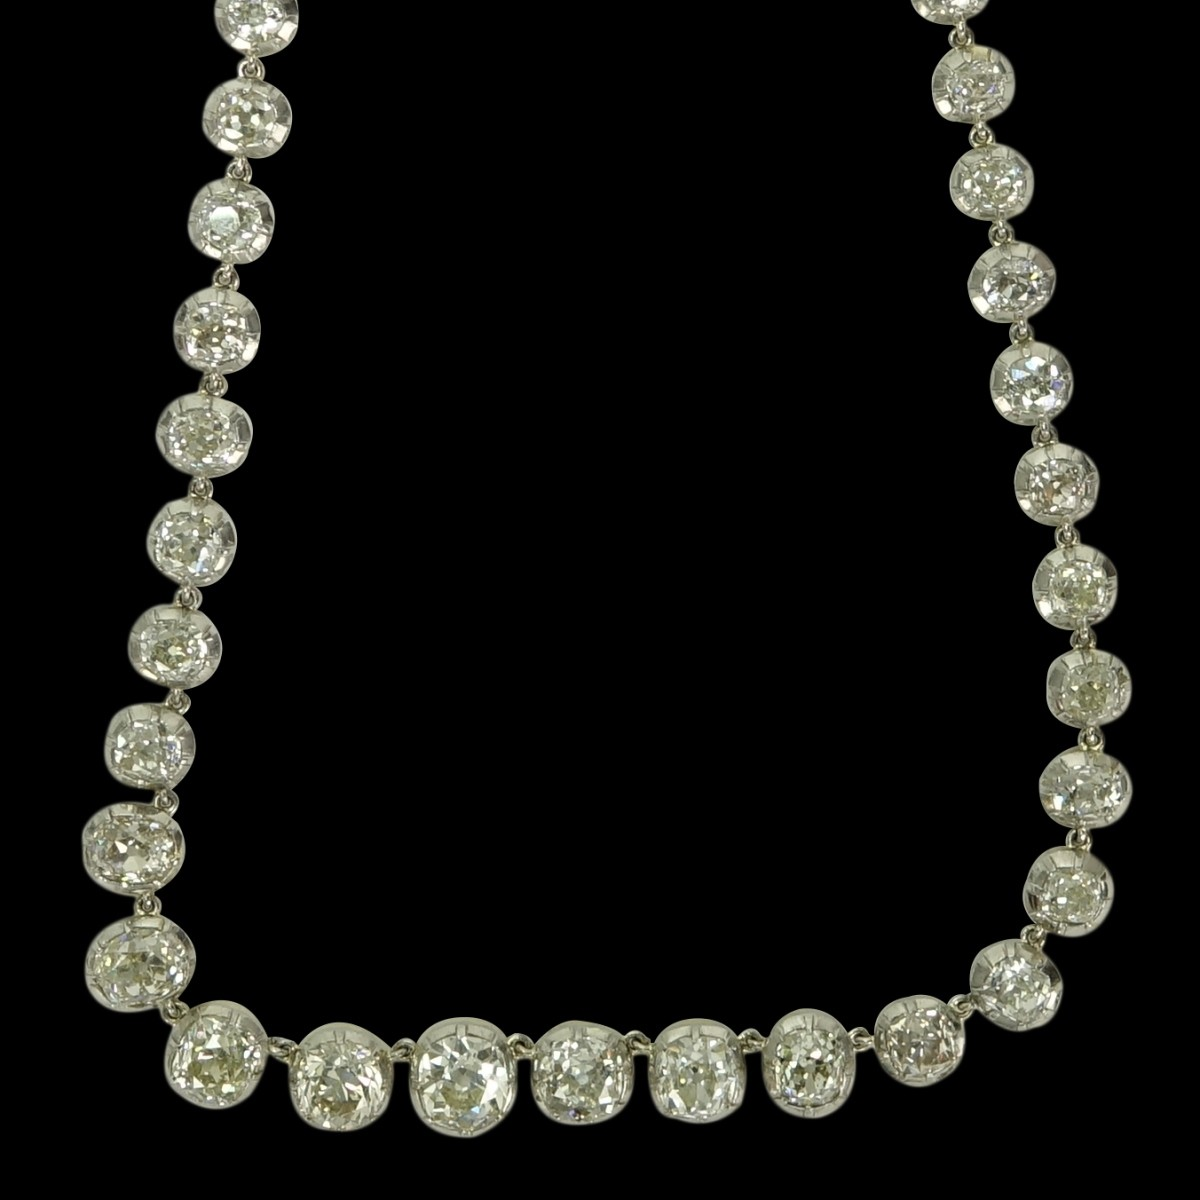 35.53ct TW Diamond, 18K and Platinum Necklace